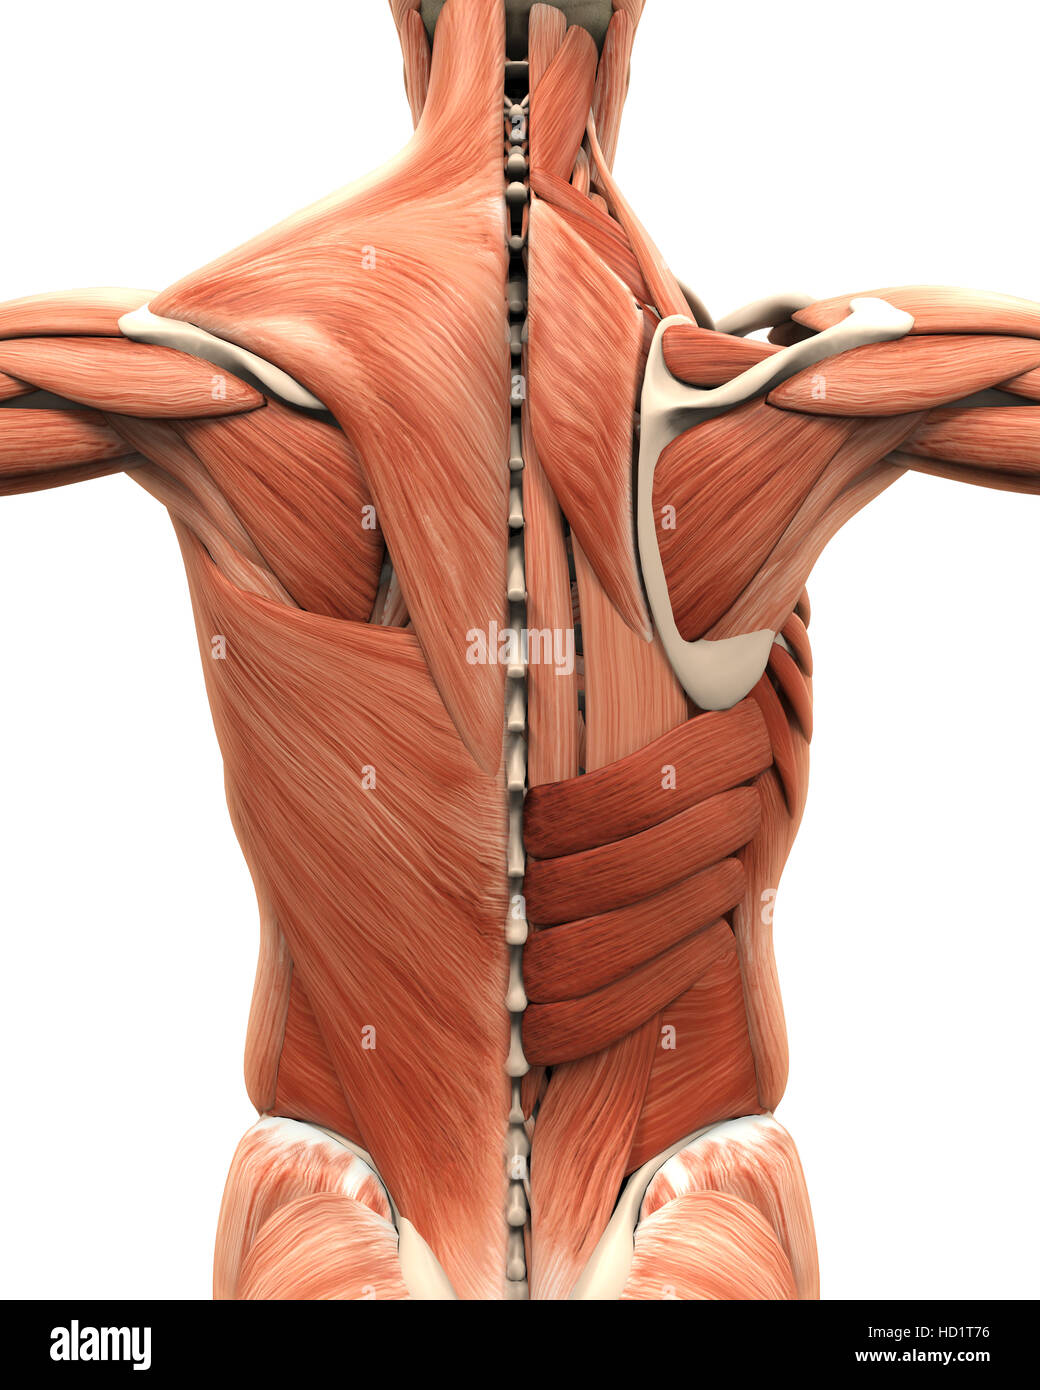 Muscular Anatomy of the Back Stock Photo: 128504074 - Alamy